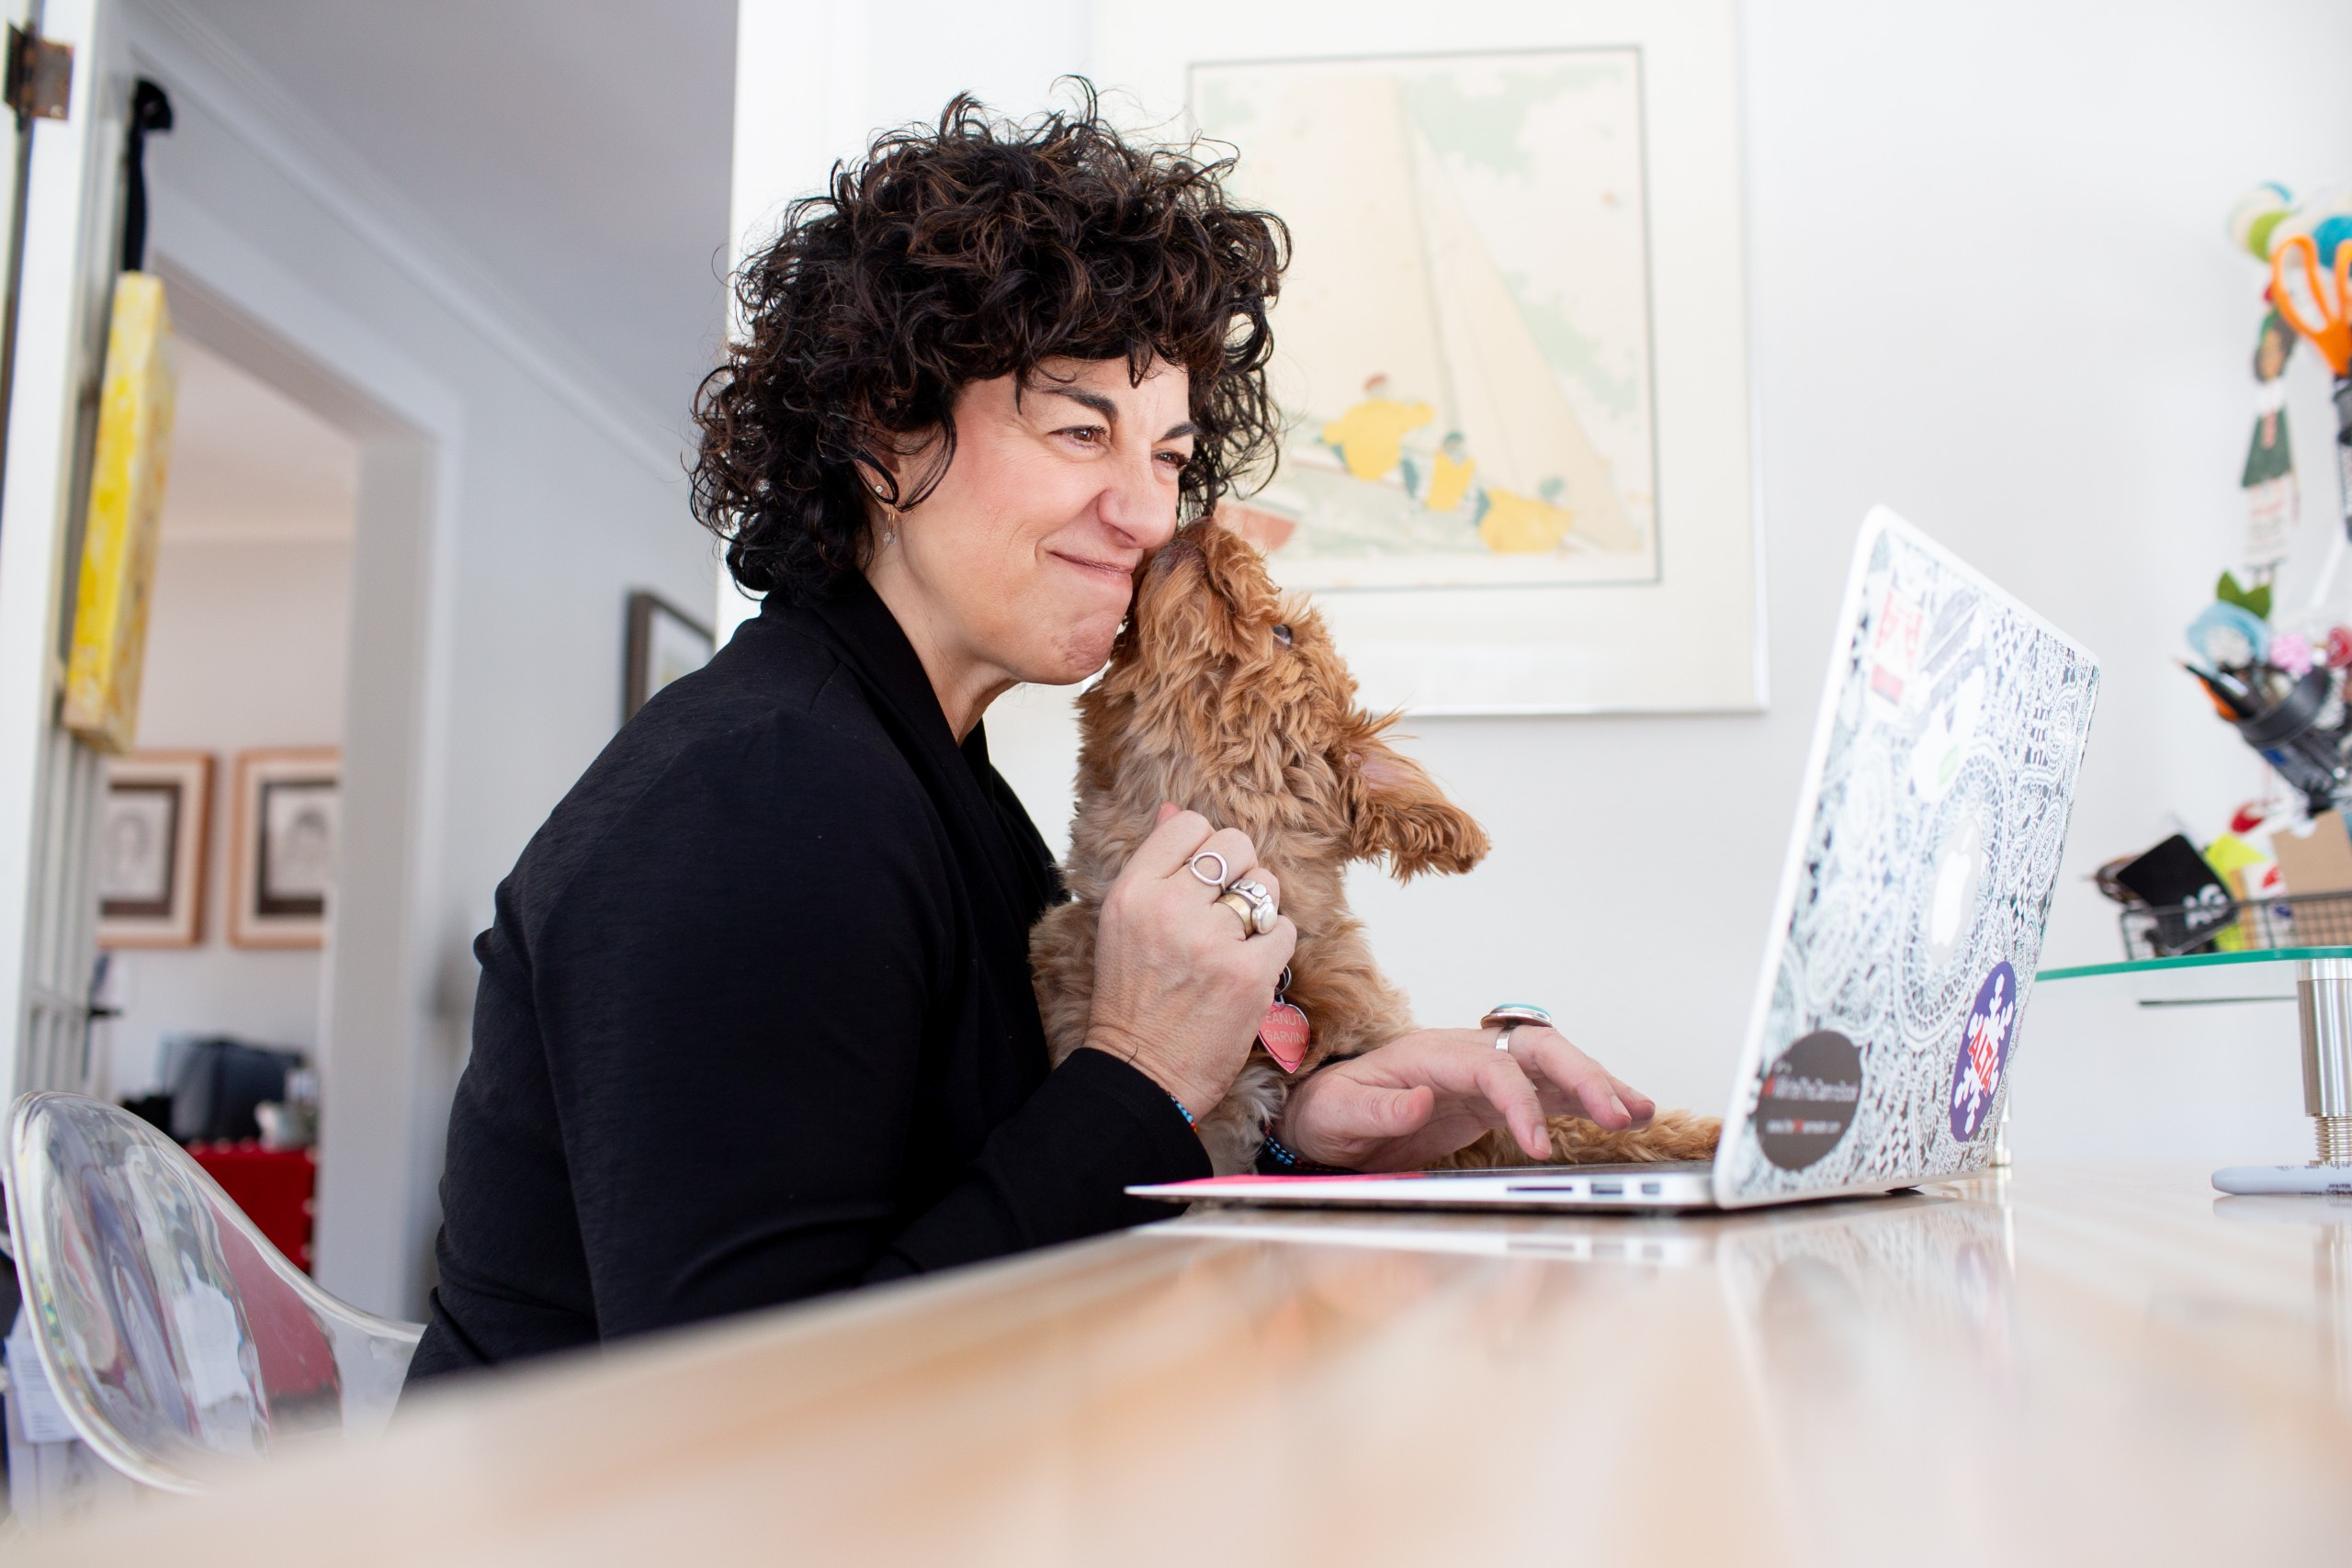 Ann Garvin is sitting at a table before her open laptop with her dog, Peanut, on her lap, who is giving her a smooch